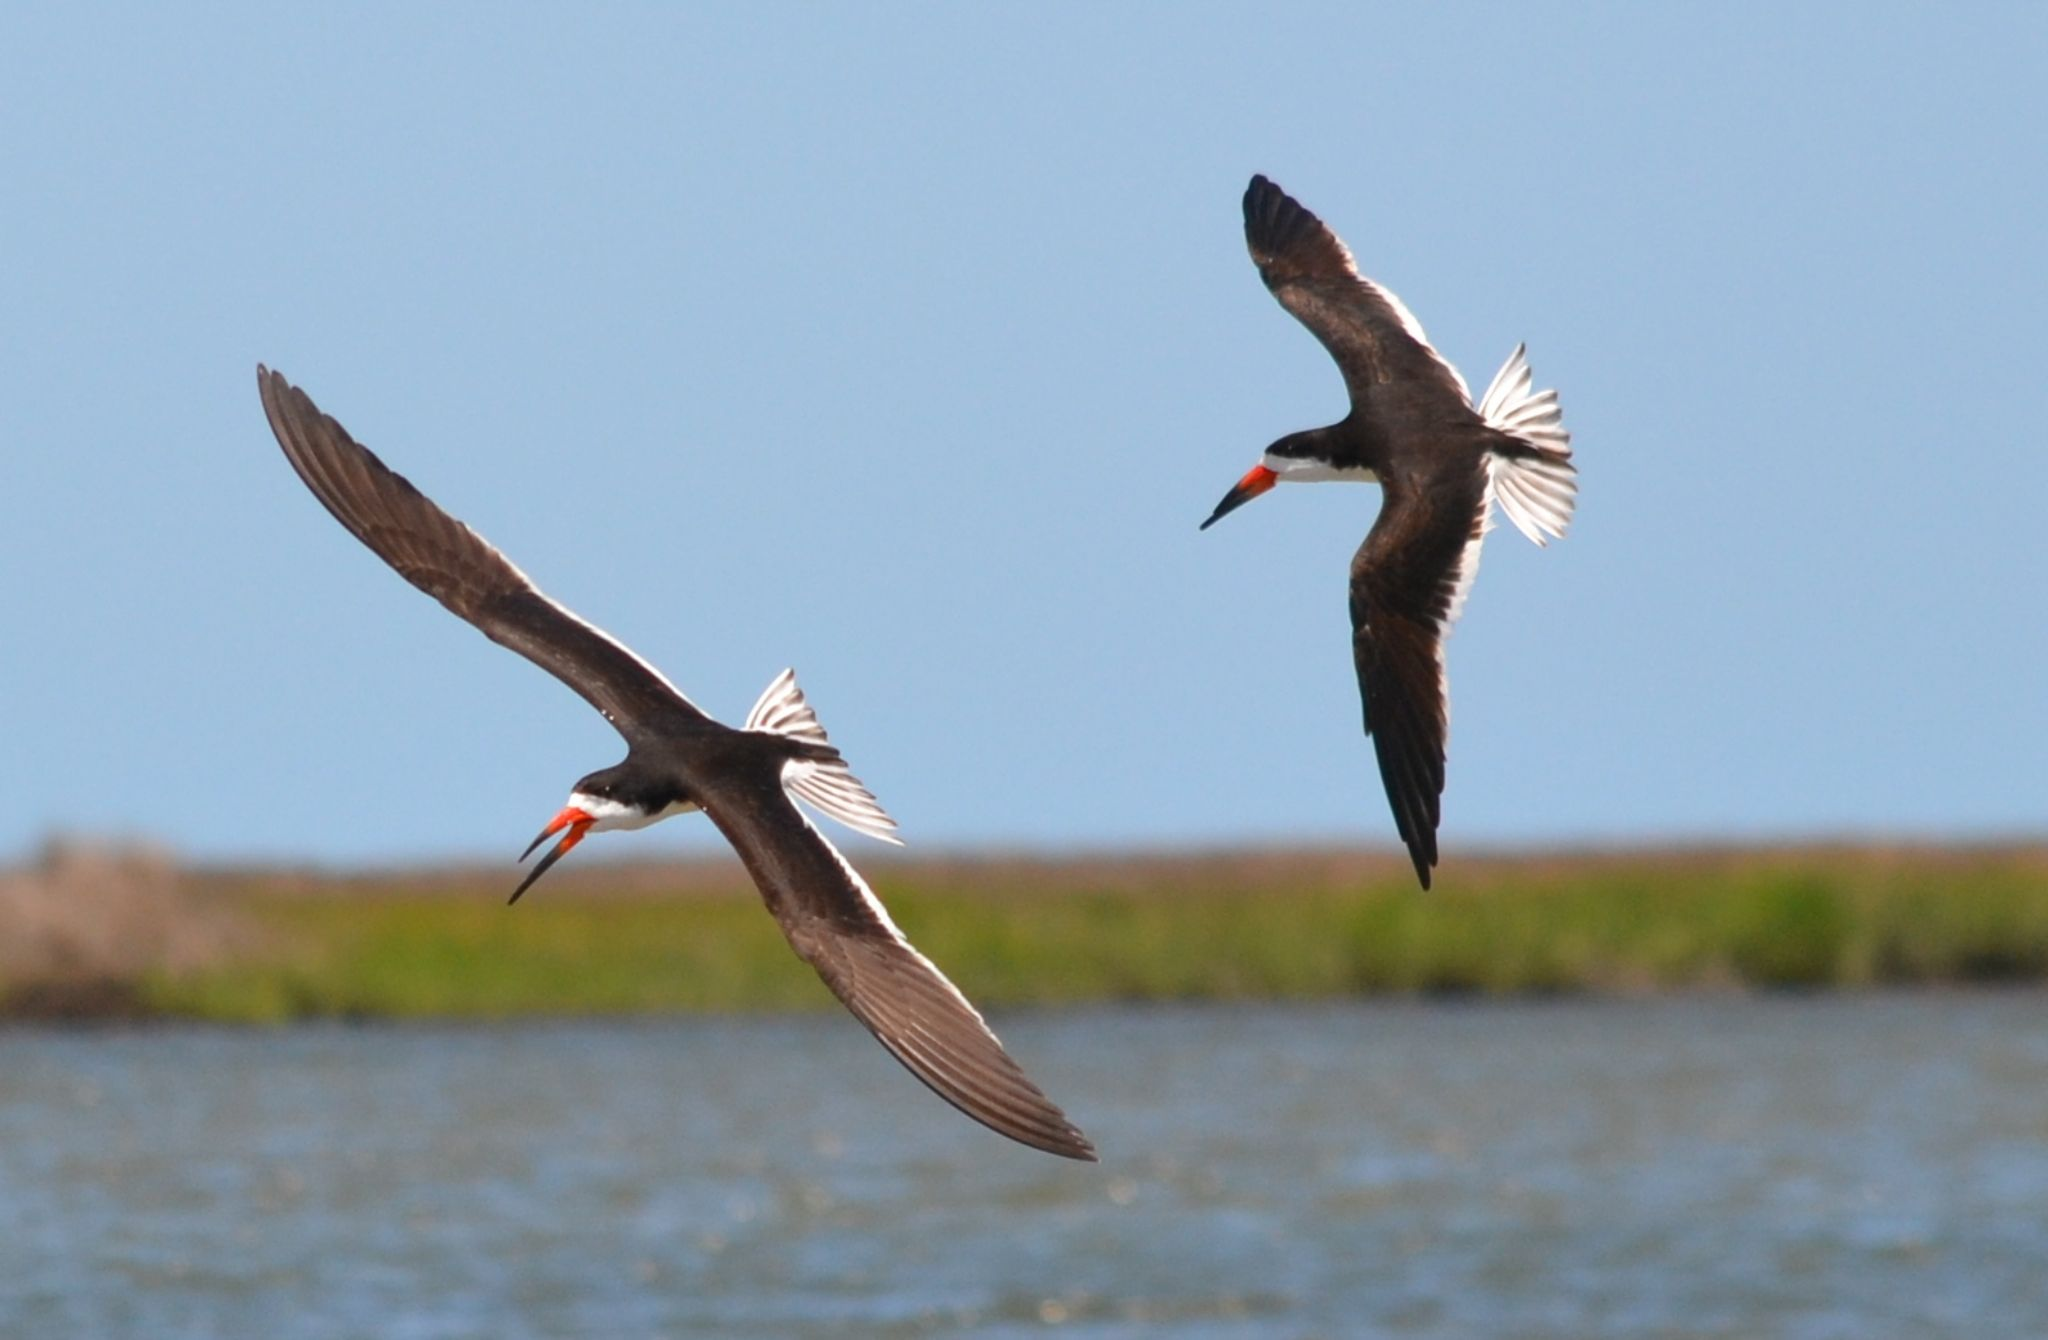 2 flying skimmers33 by jetskibrian